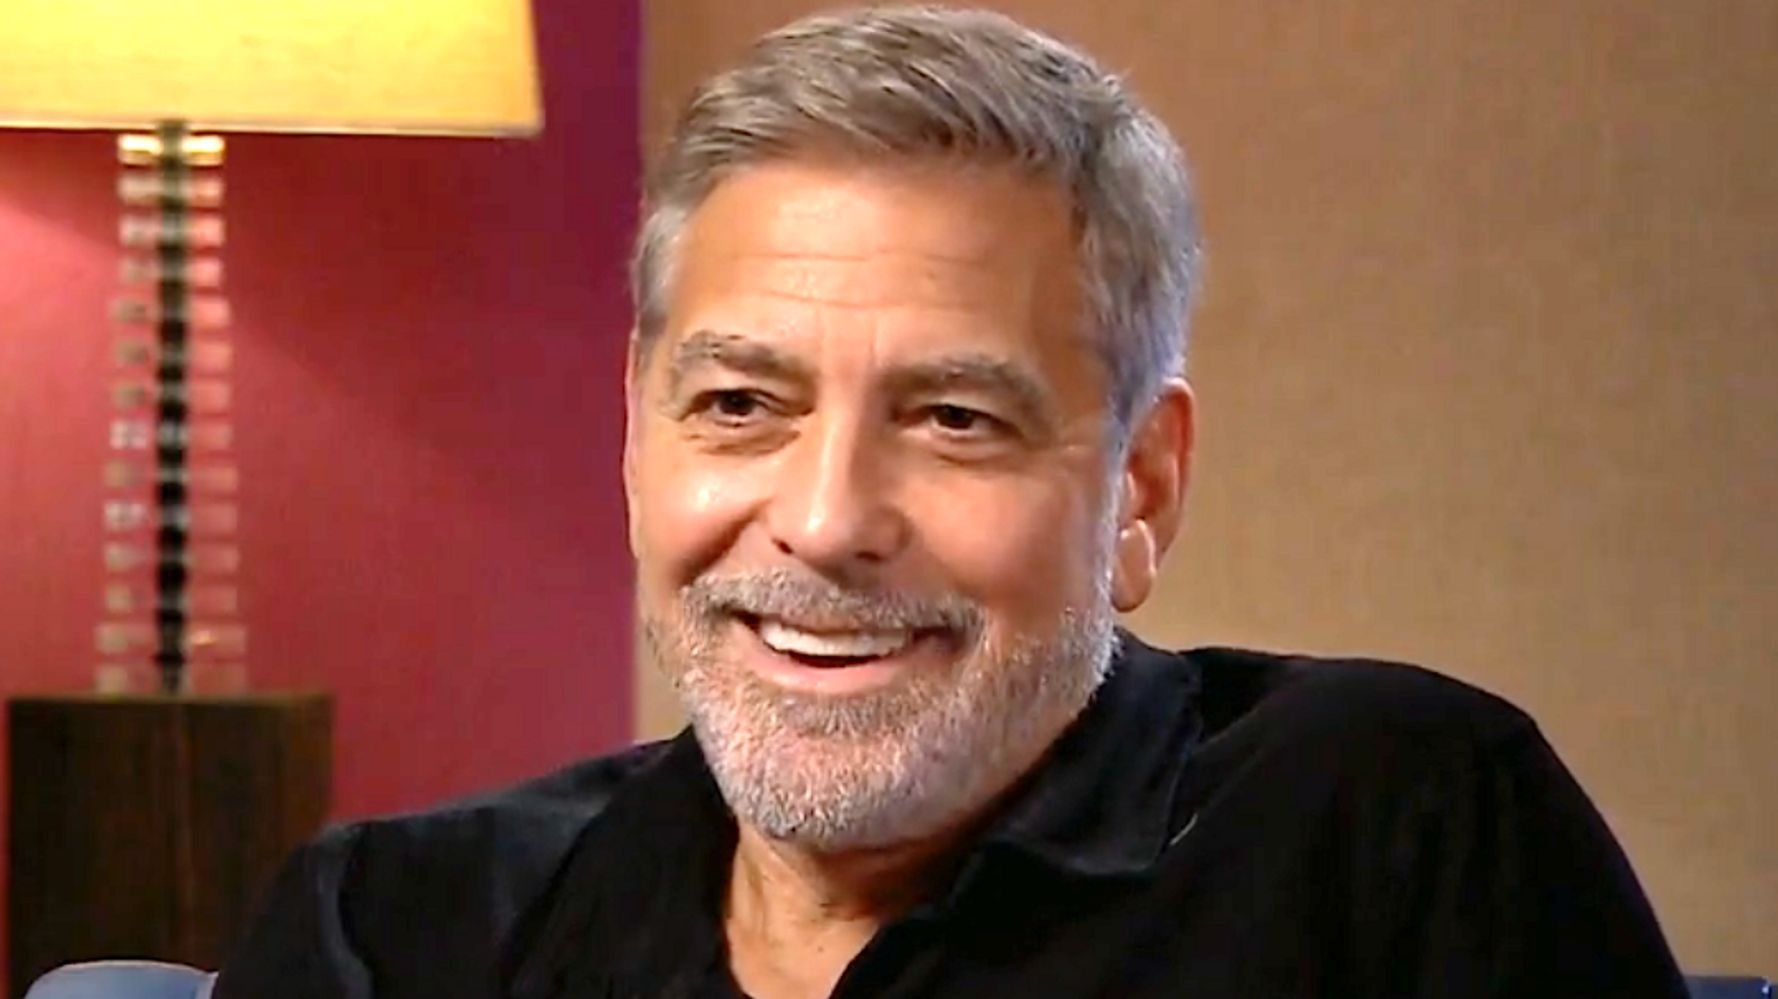 George Clooney Brilliantly Breaks Down Why He Won't Run For Office 1